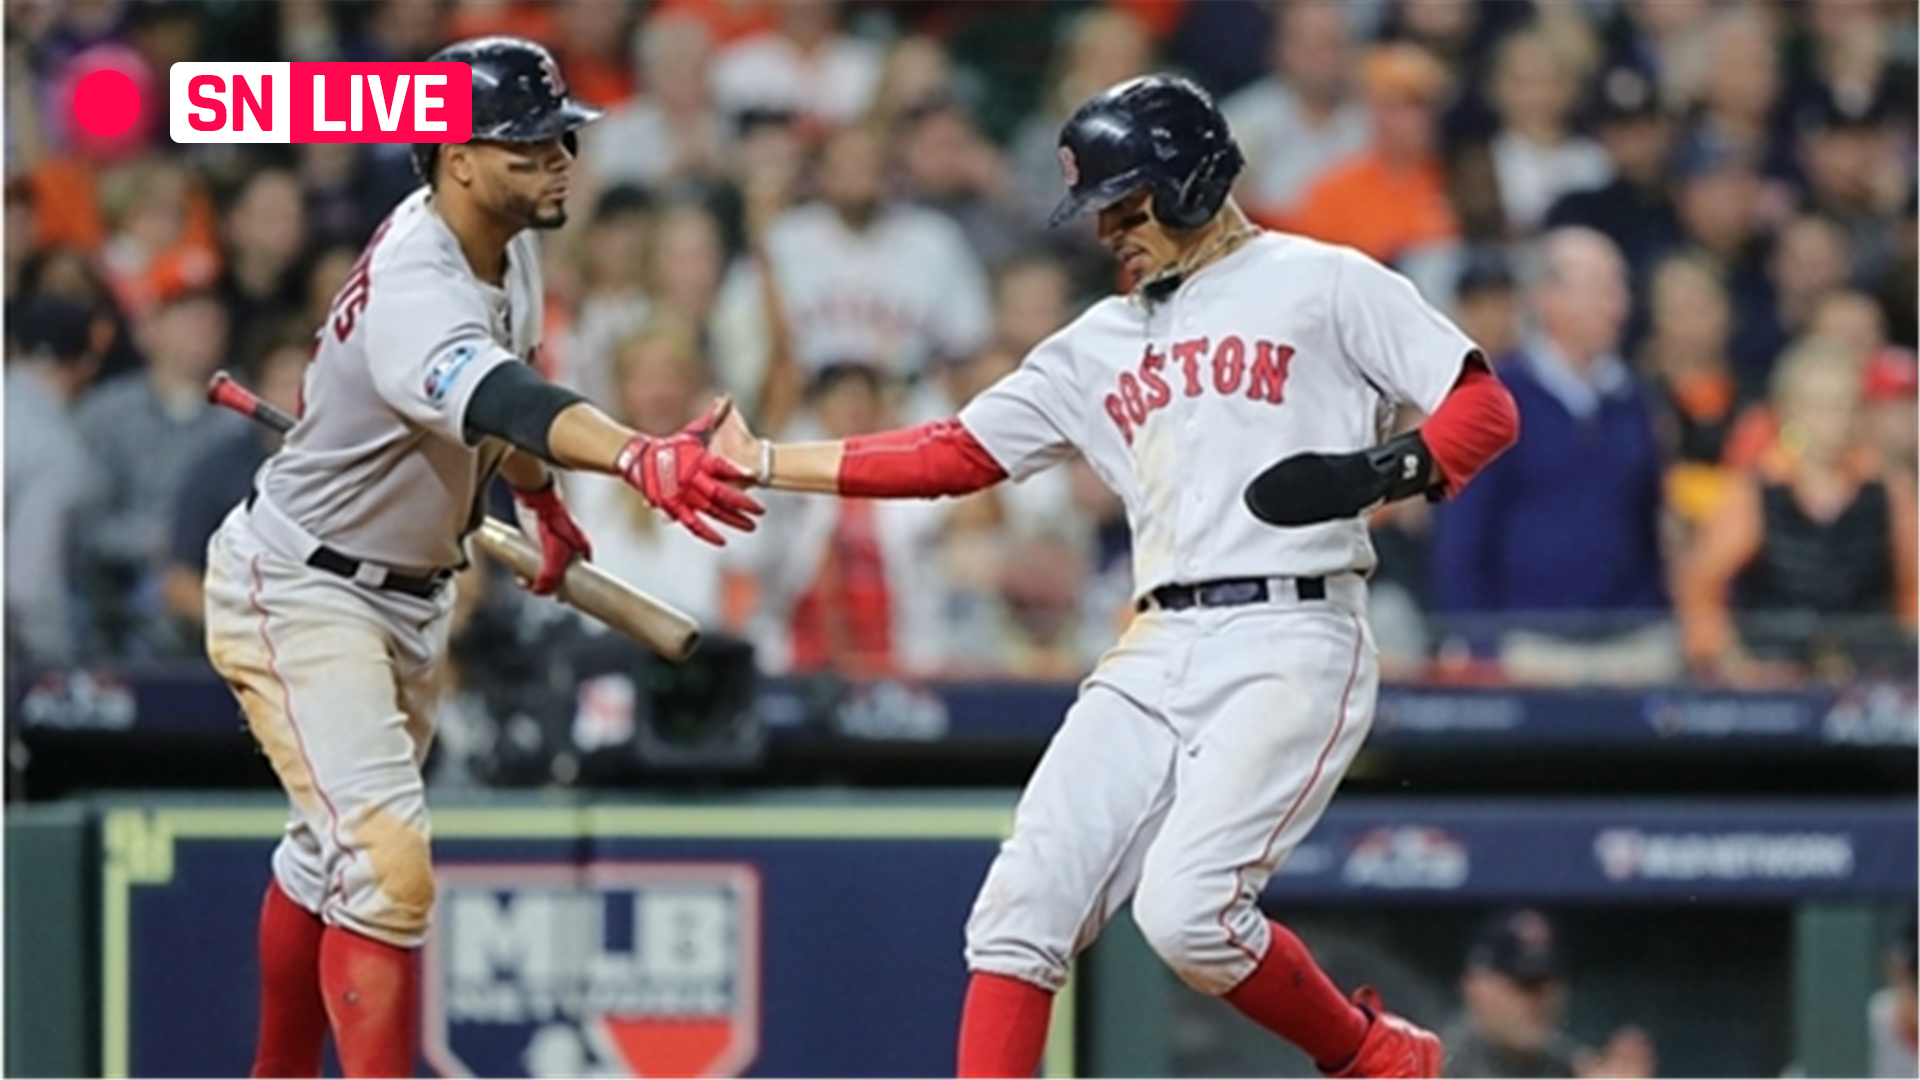 Red Sox vs. Astros: Score, highlights, updates from Game 5 of the ALCS